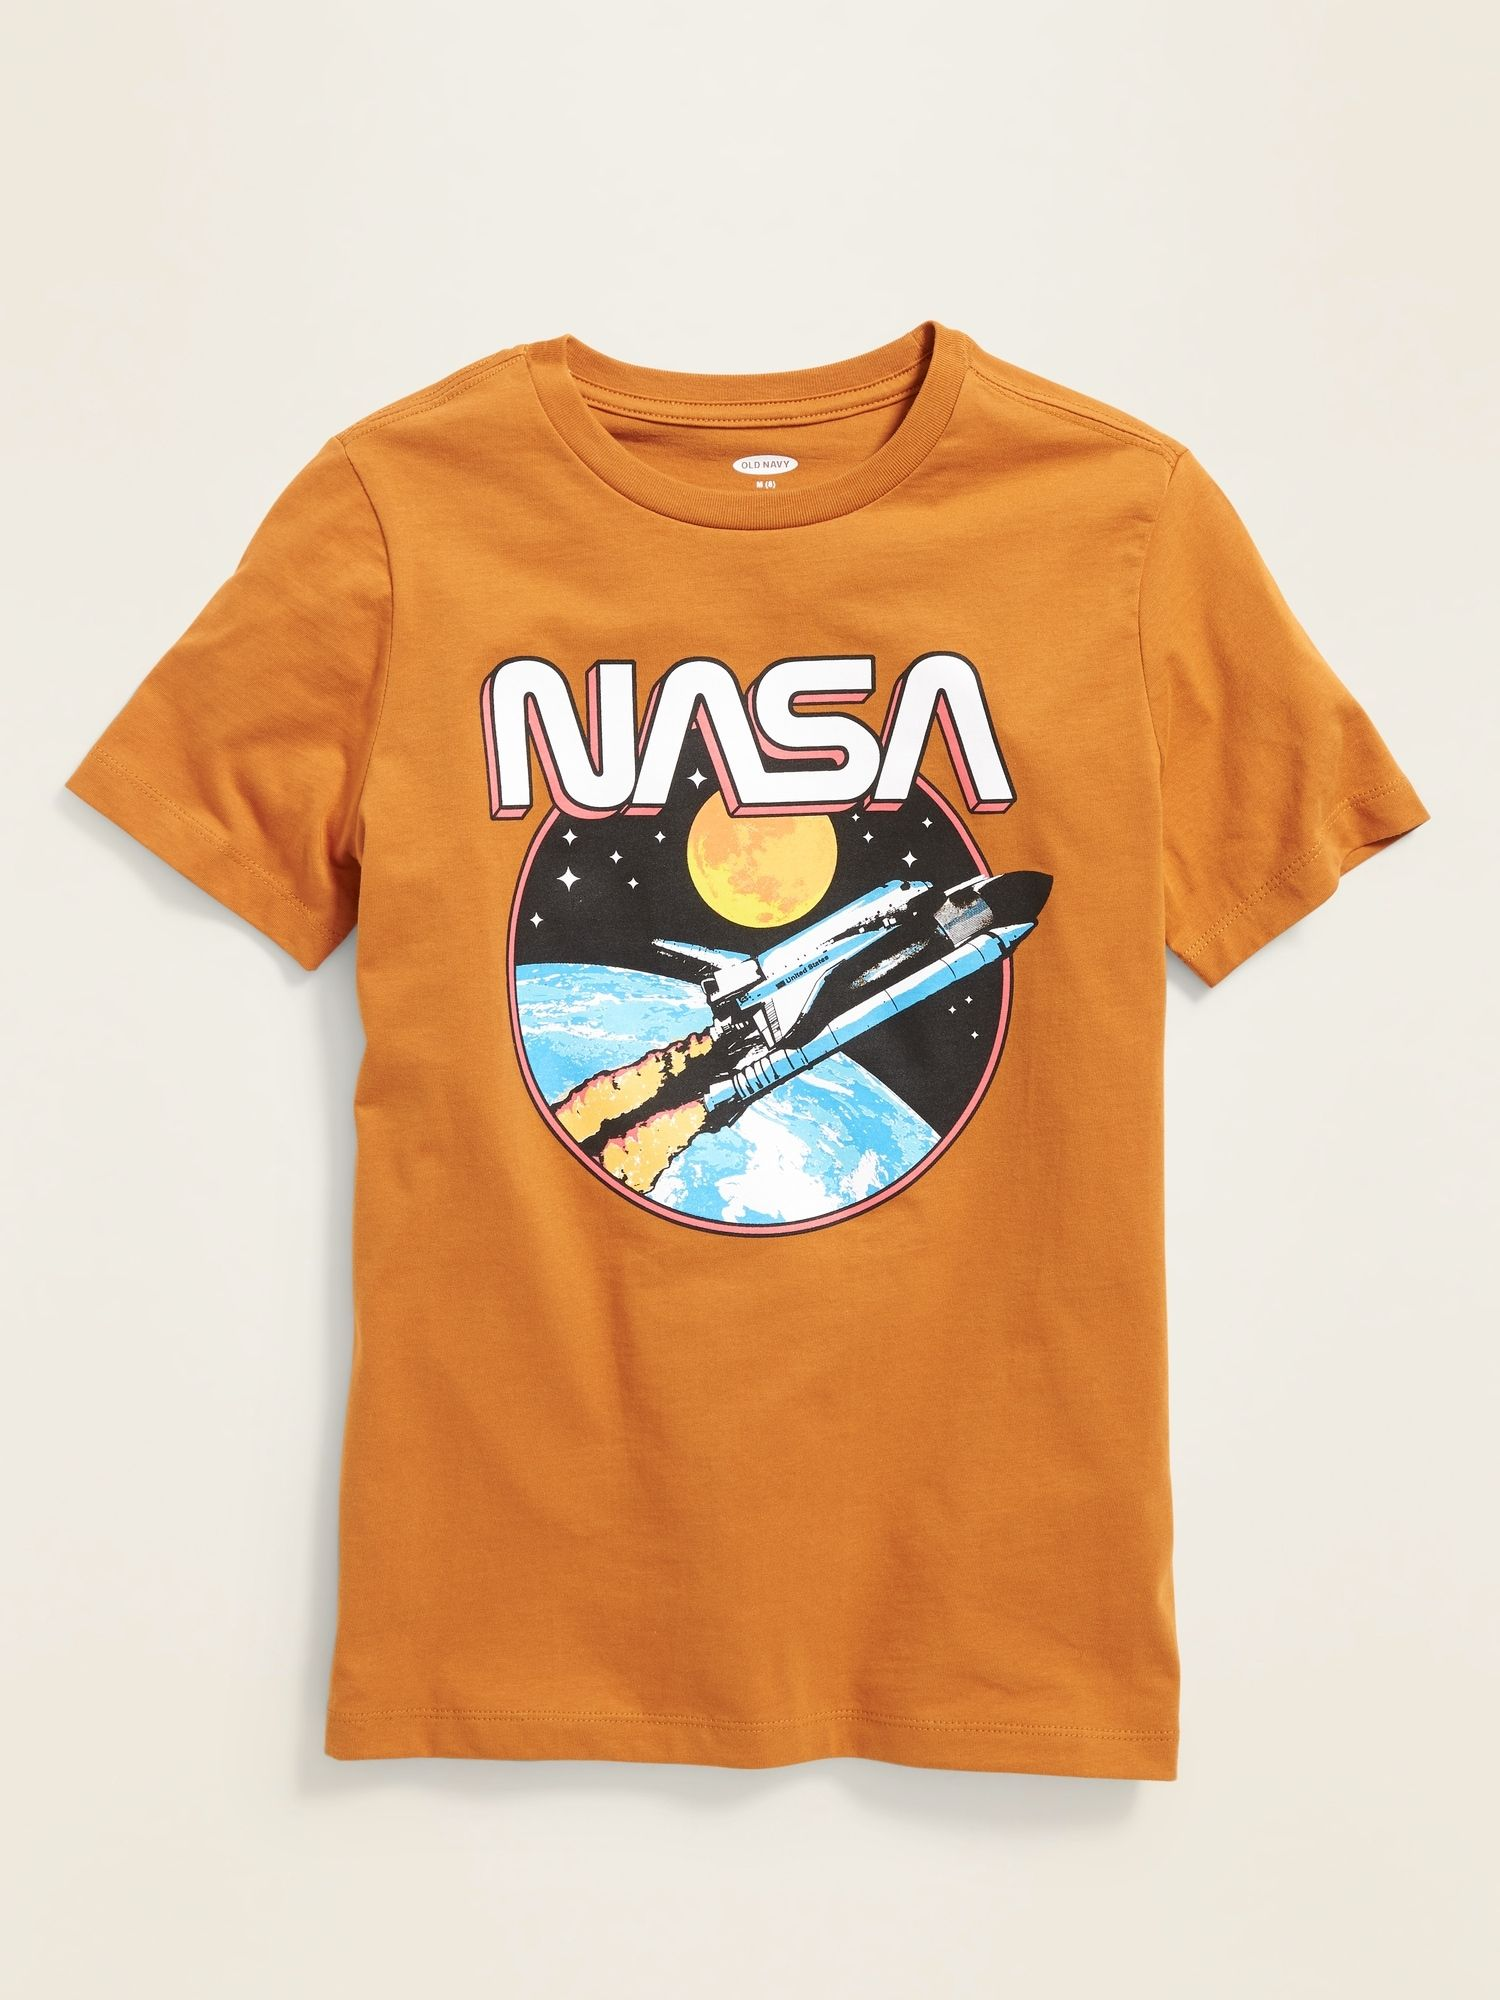 Old Navy Nasa® Space Rocket Graphic Tee for Boys